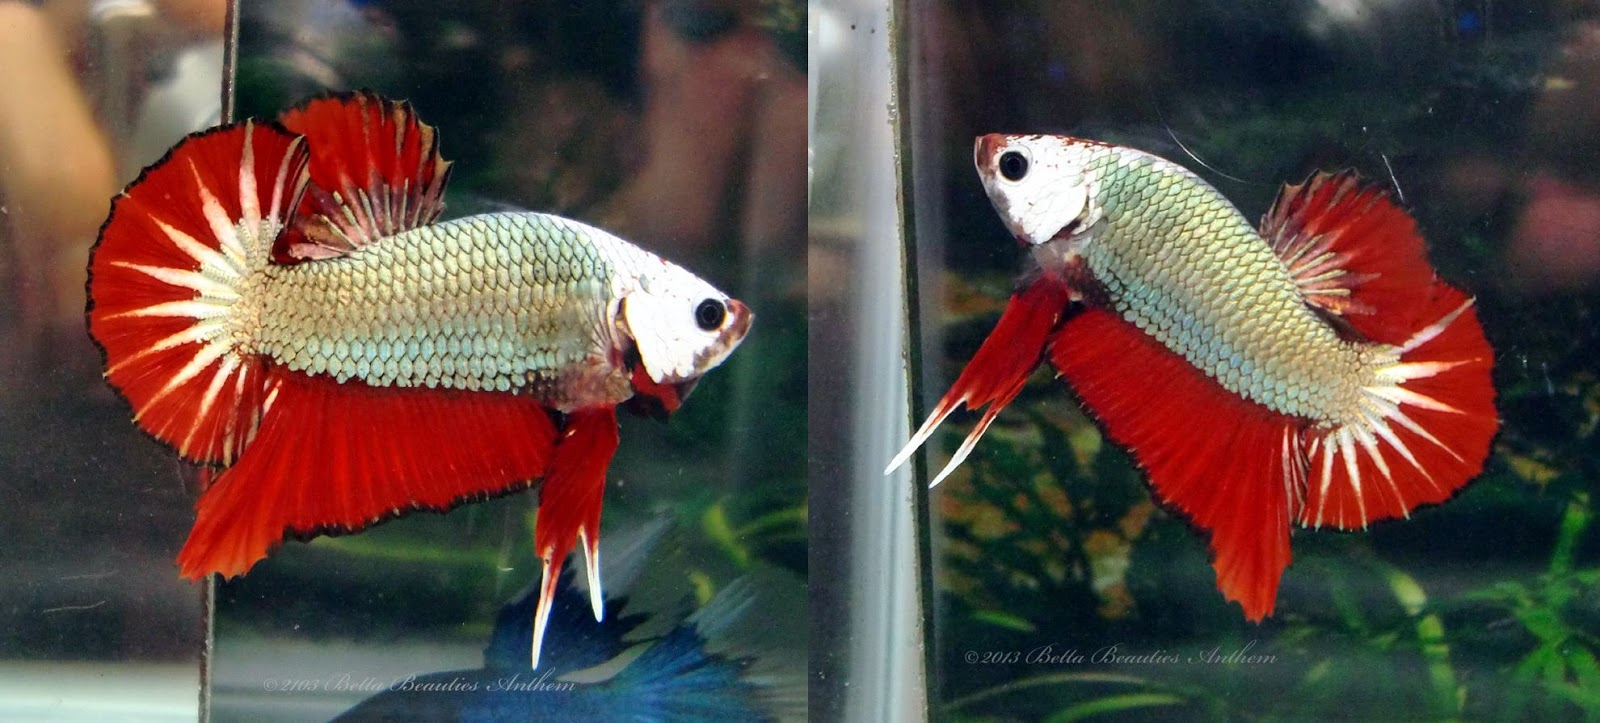 PG's Betta Store: HMPK Halfmoon Plakat Cooper Red Monster